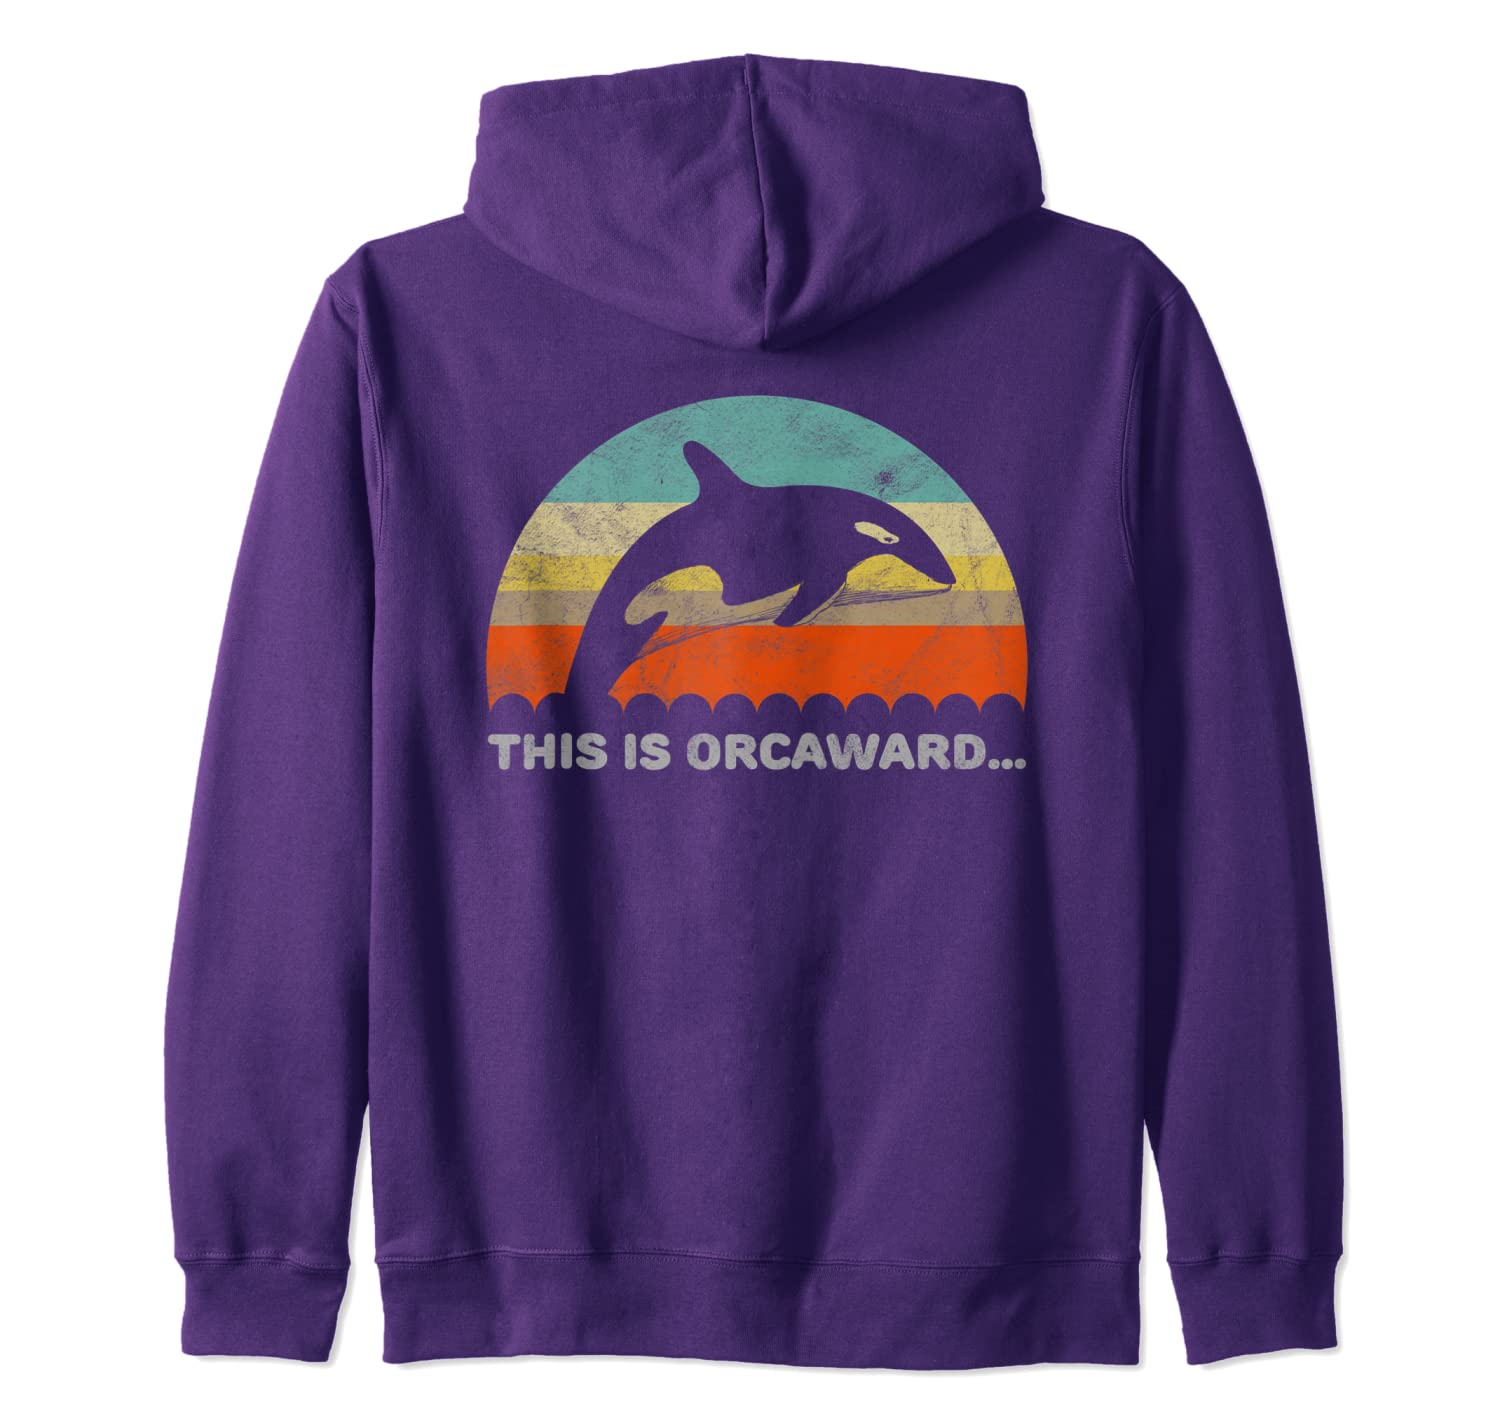 Funny Orca This Is Orcaward Awkward Pun Zip Hoodie